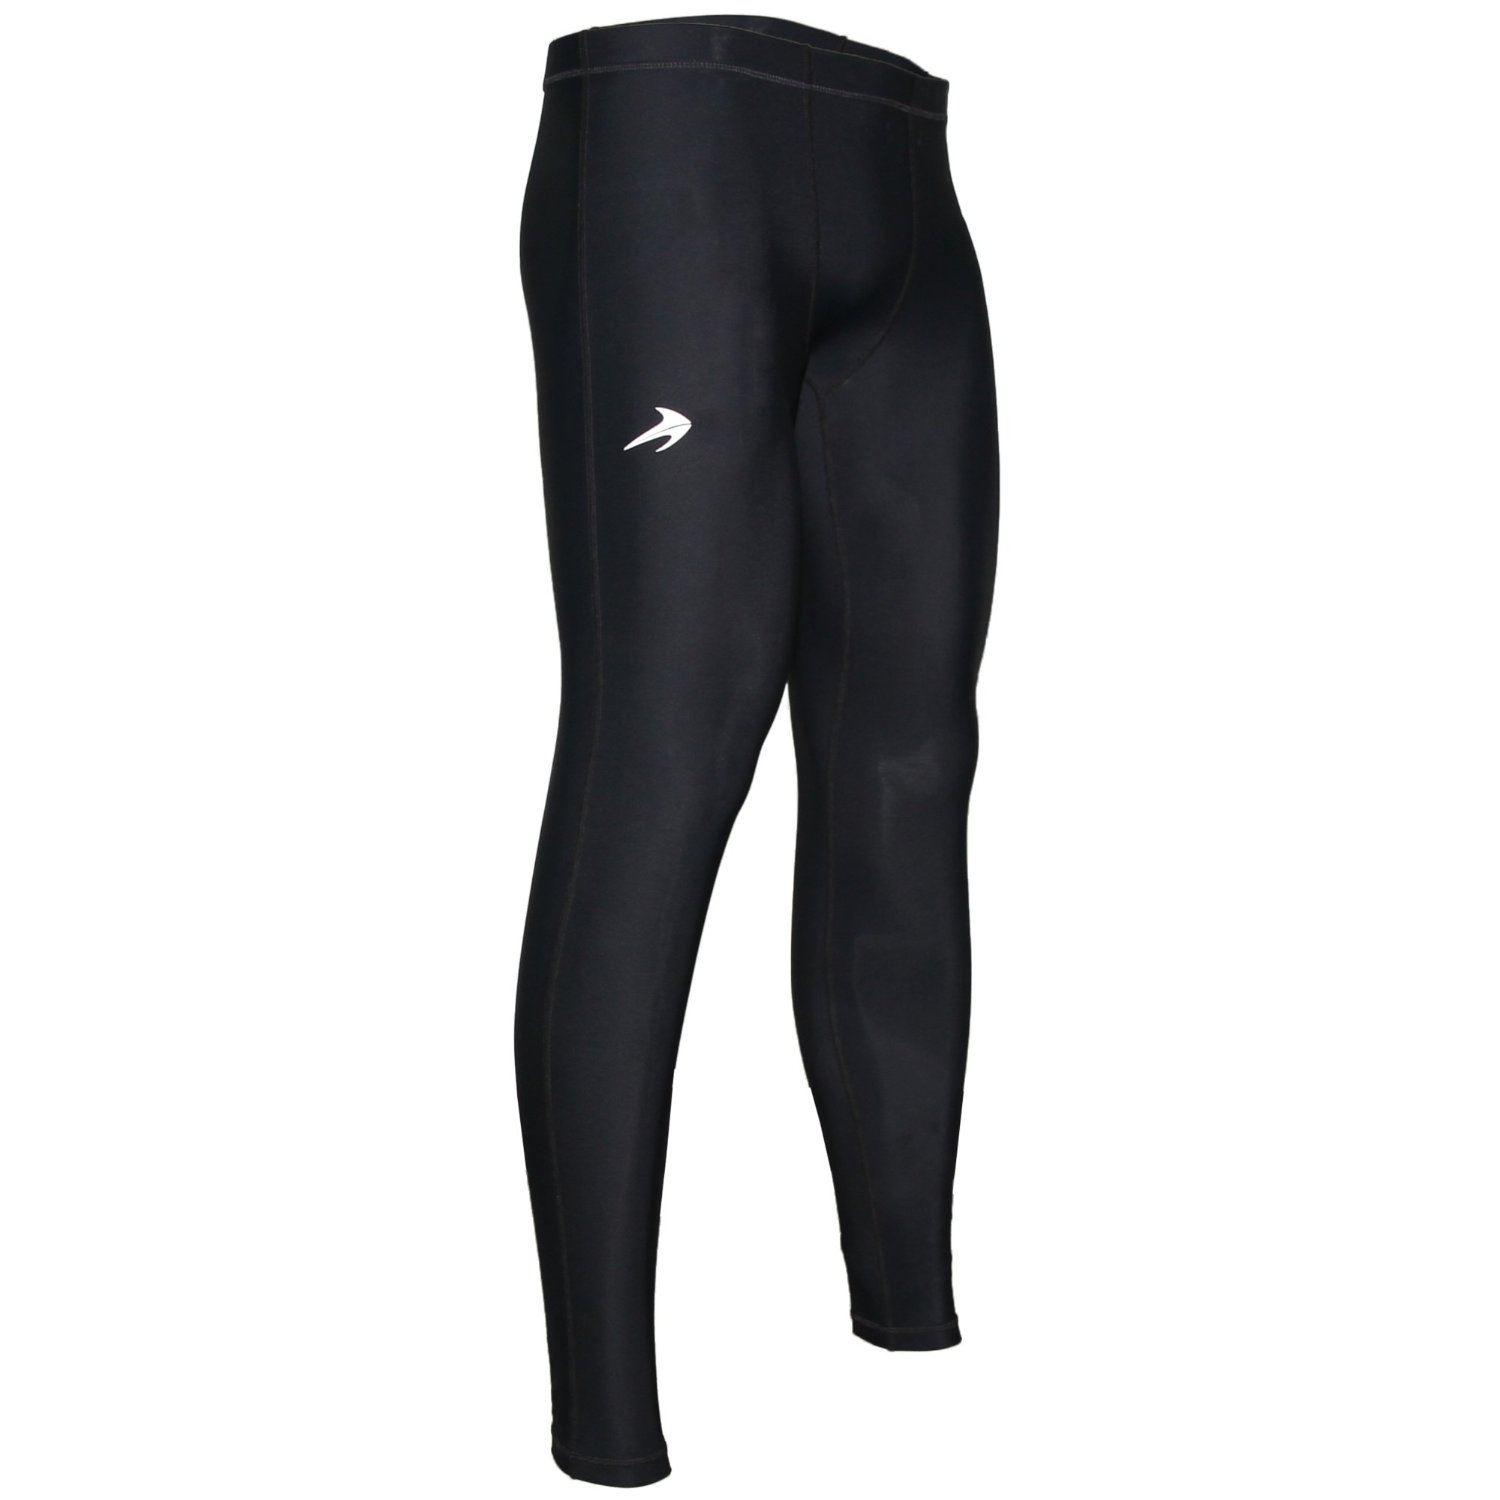 Compression Pants – Men's Tights Base Layer Leggings